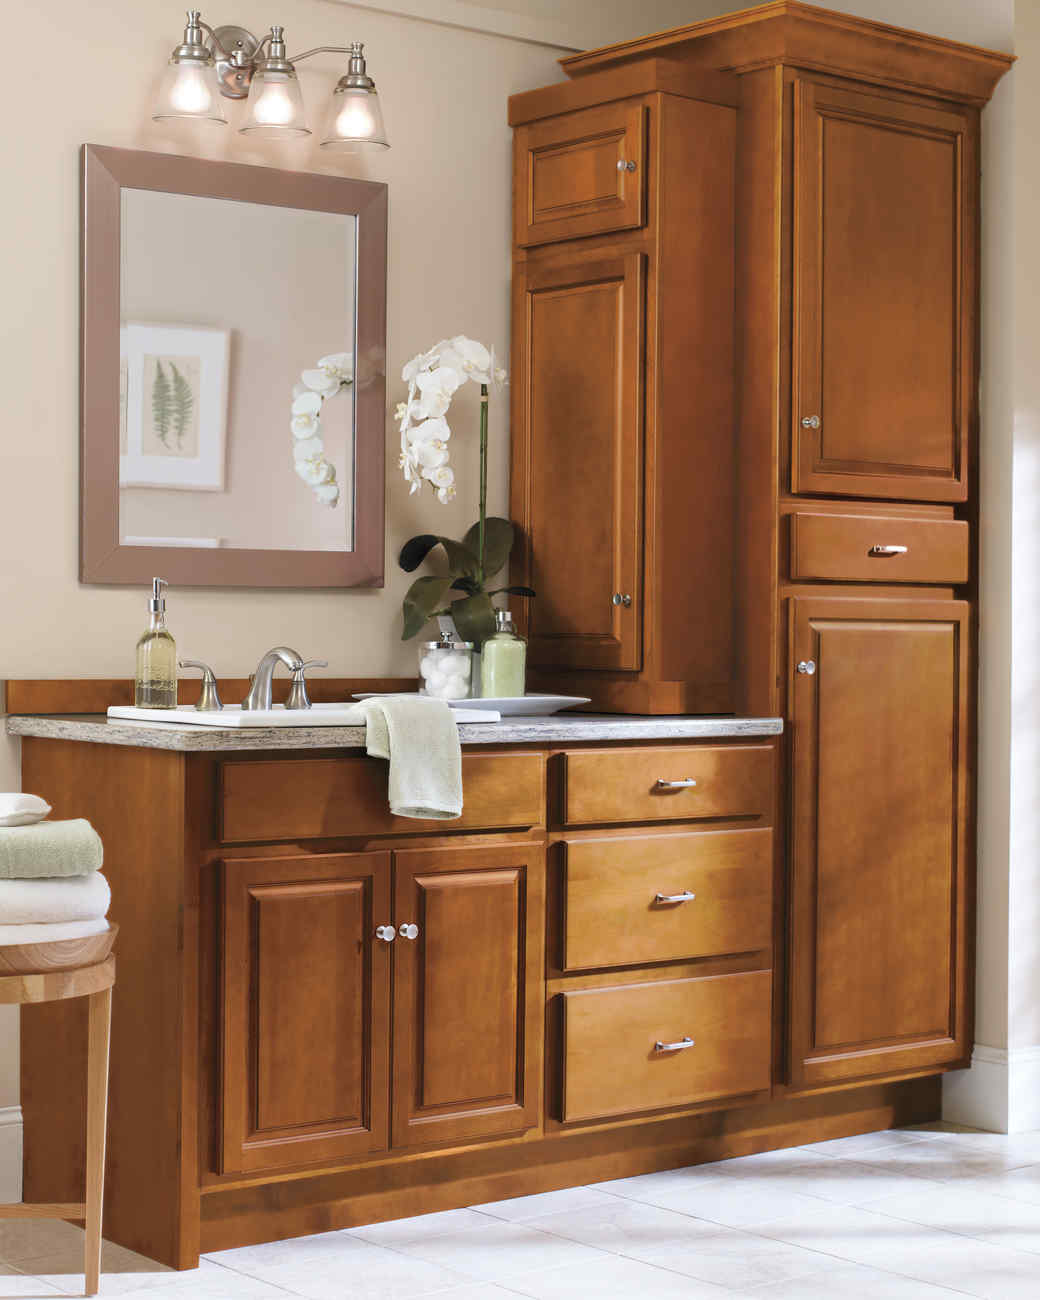 Martha Stewart Living Cabinet Solutions From The Home Depot | Martha Stewart